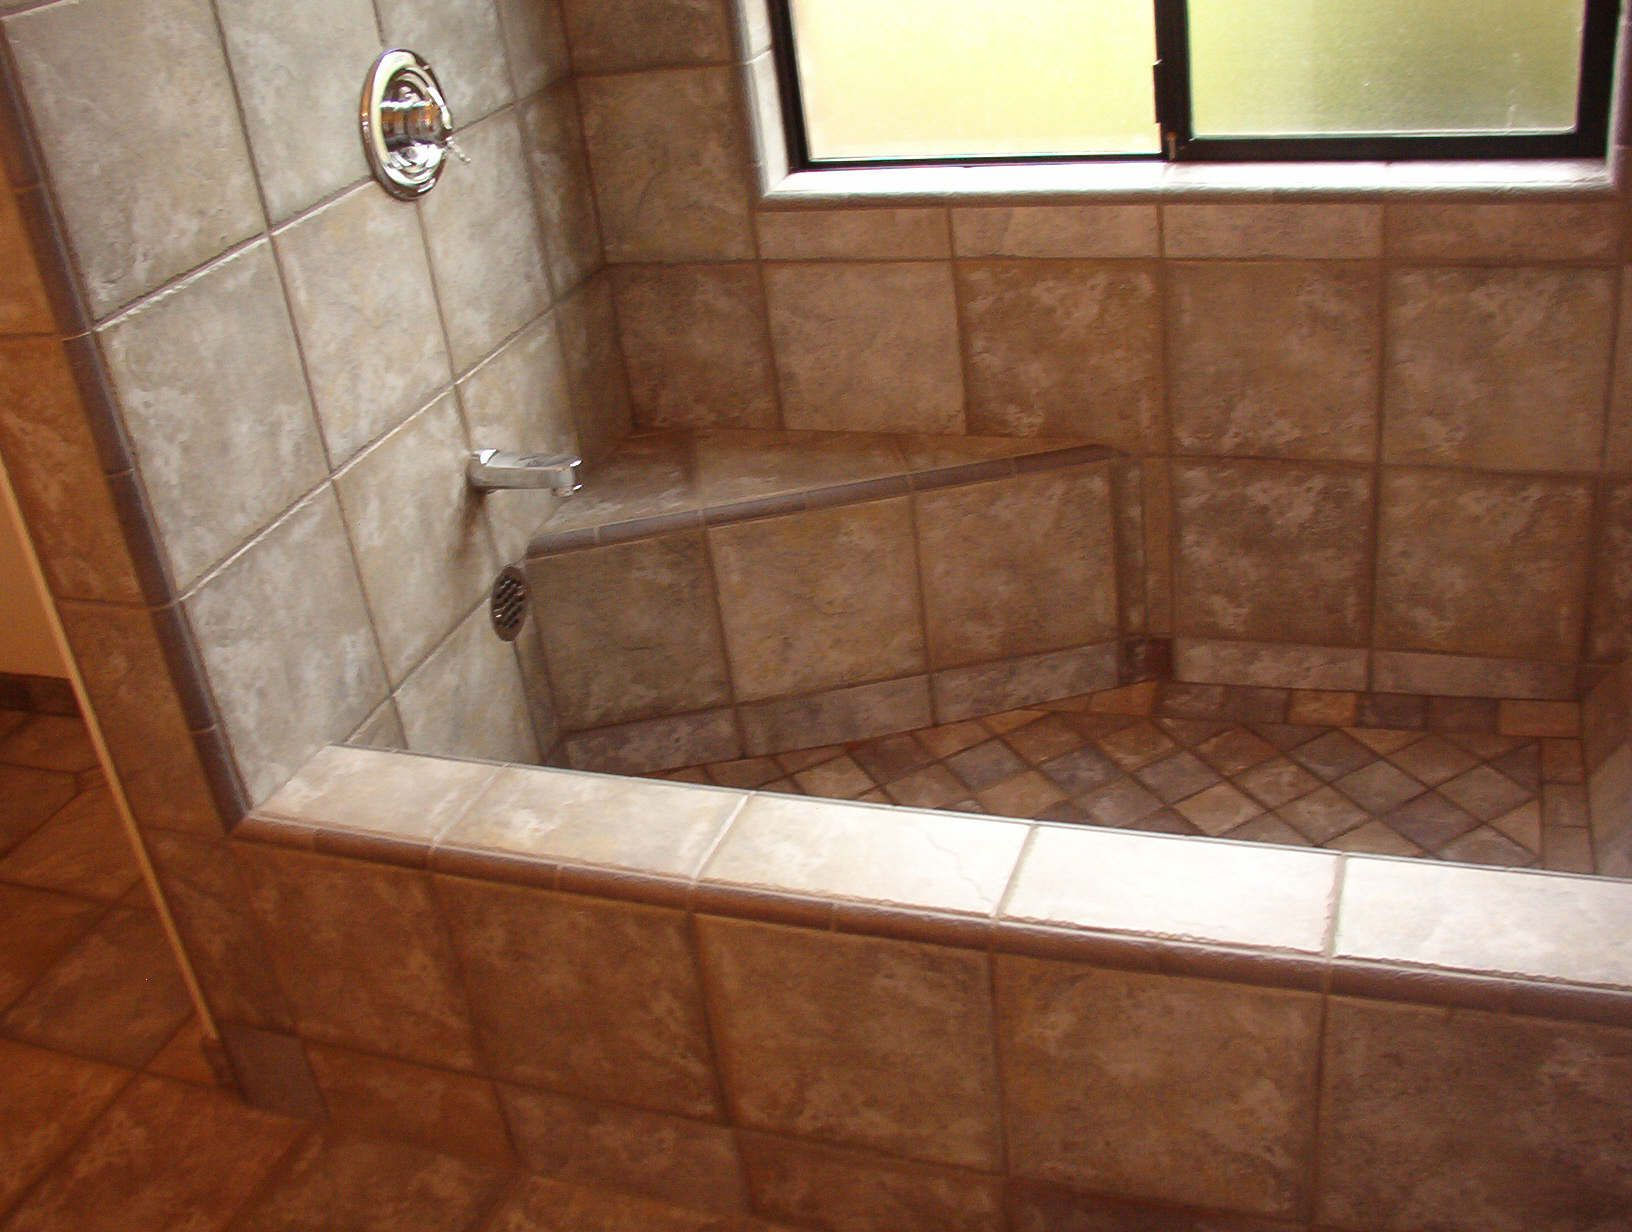 diy bathroom tile ideas bathtub ideas http totrodz bathtub 18147